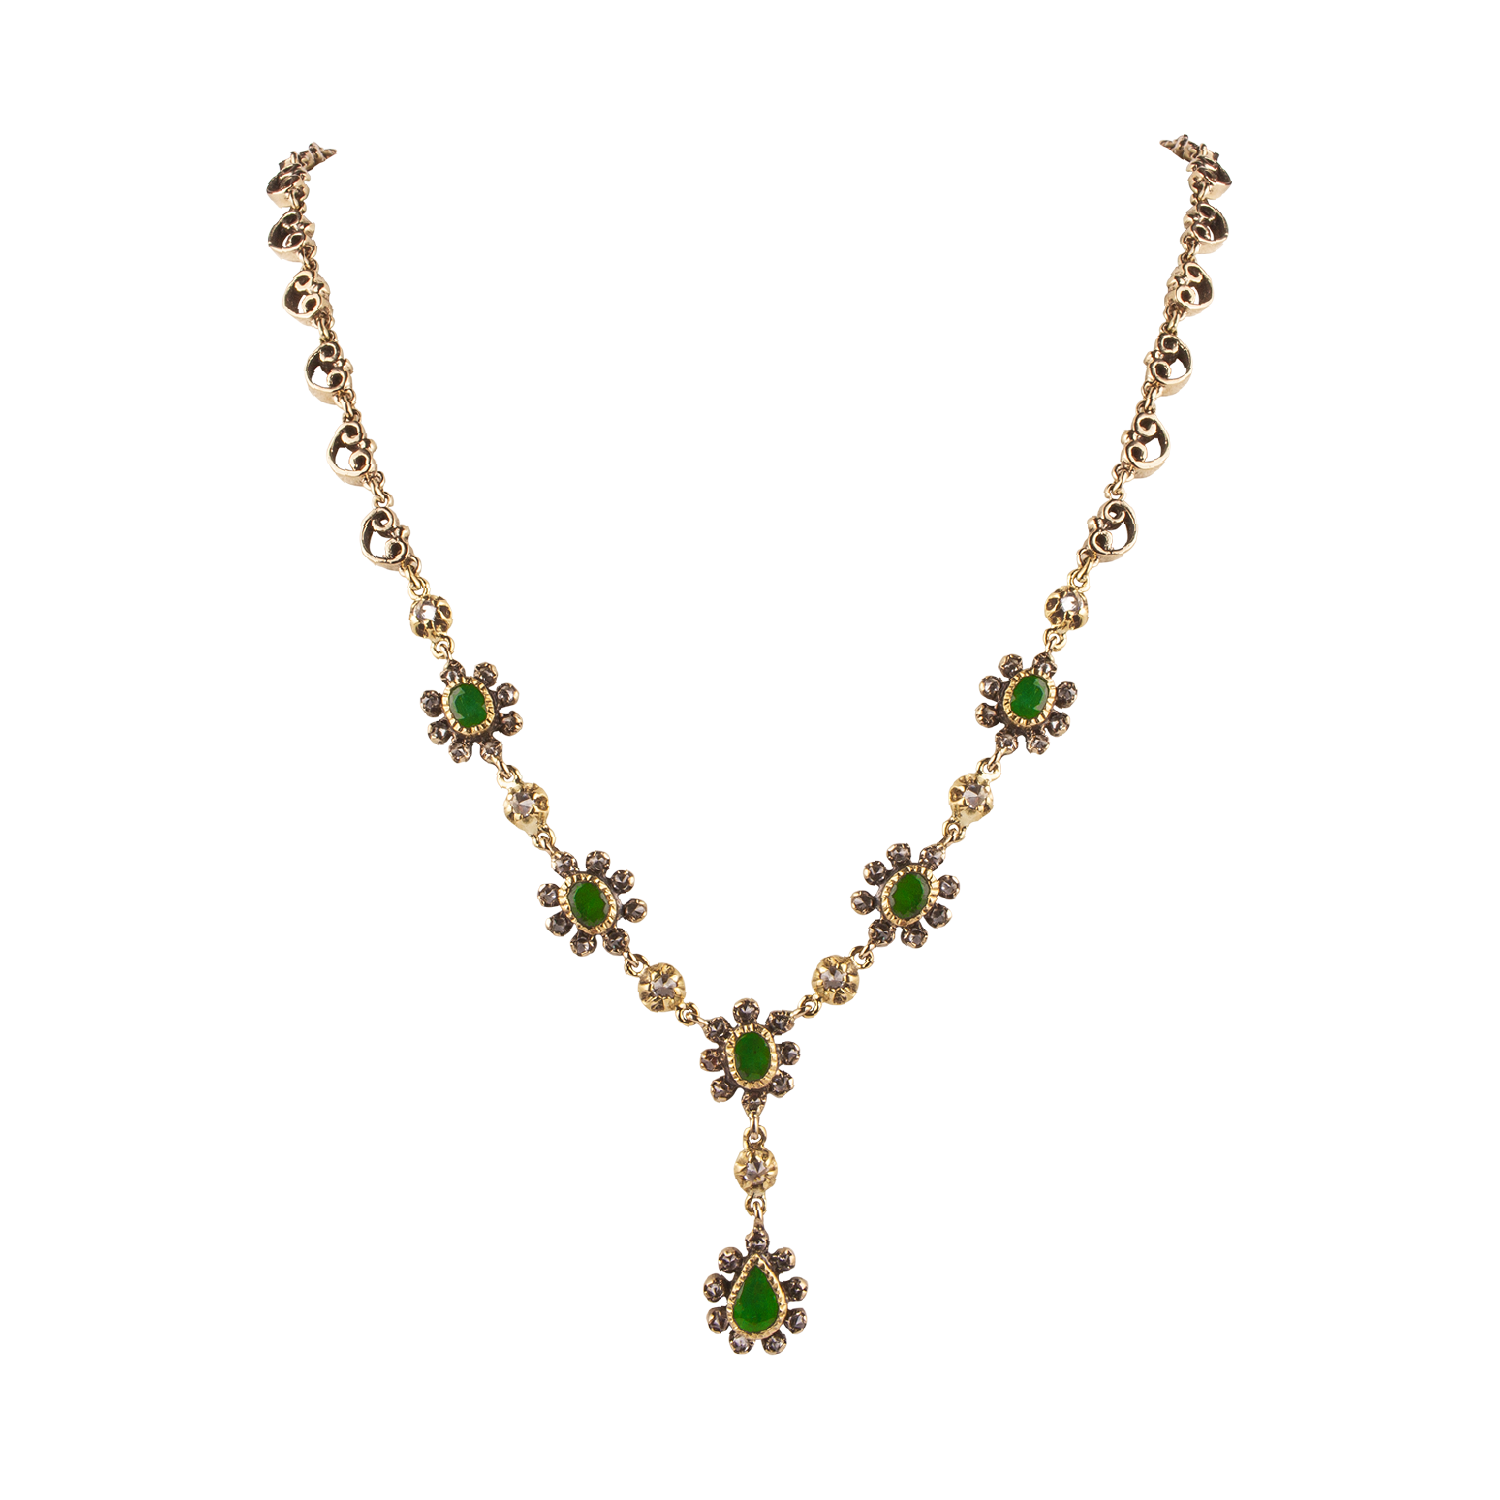 COLLIER 19112018-1